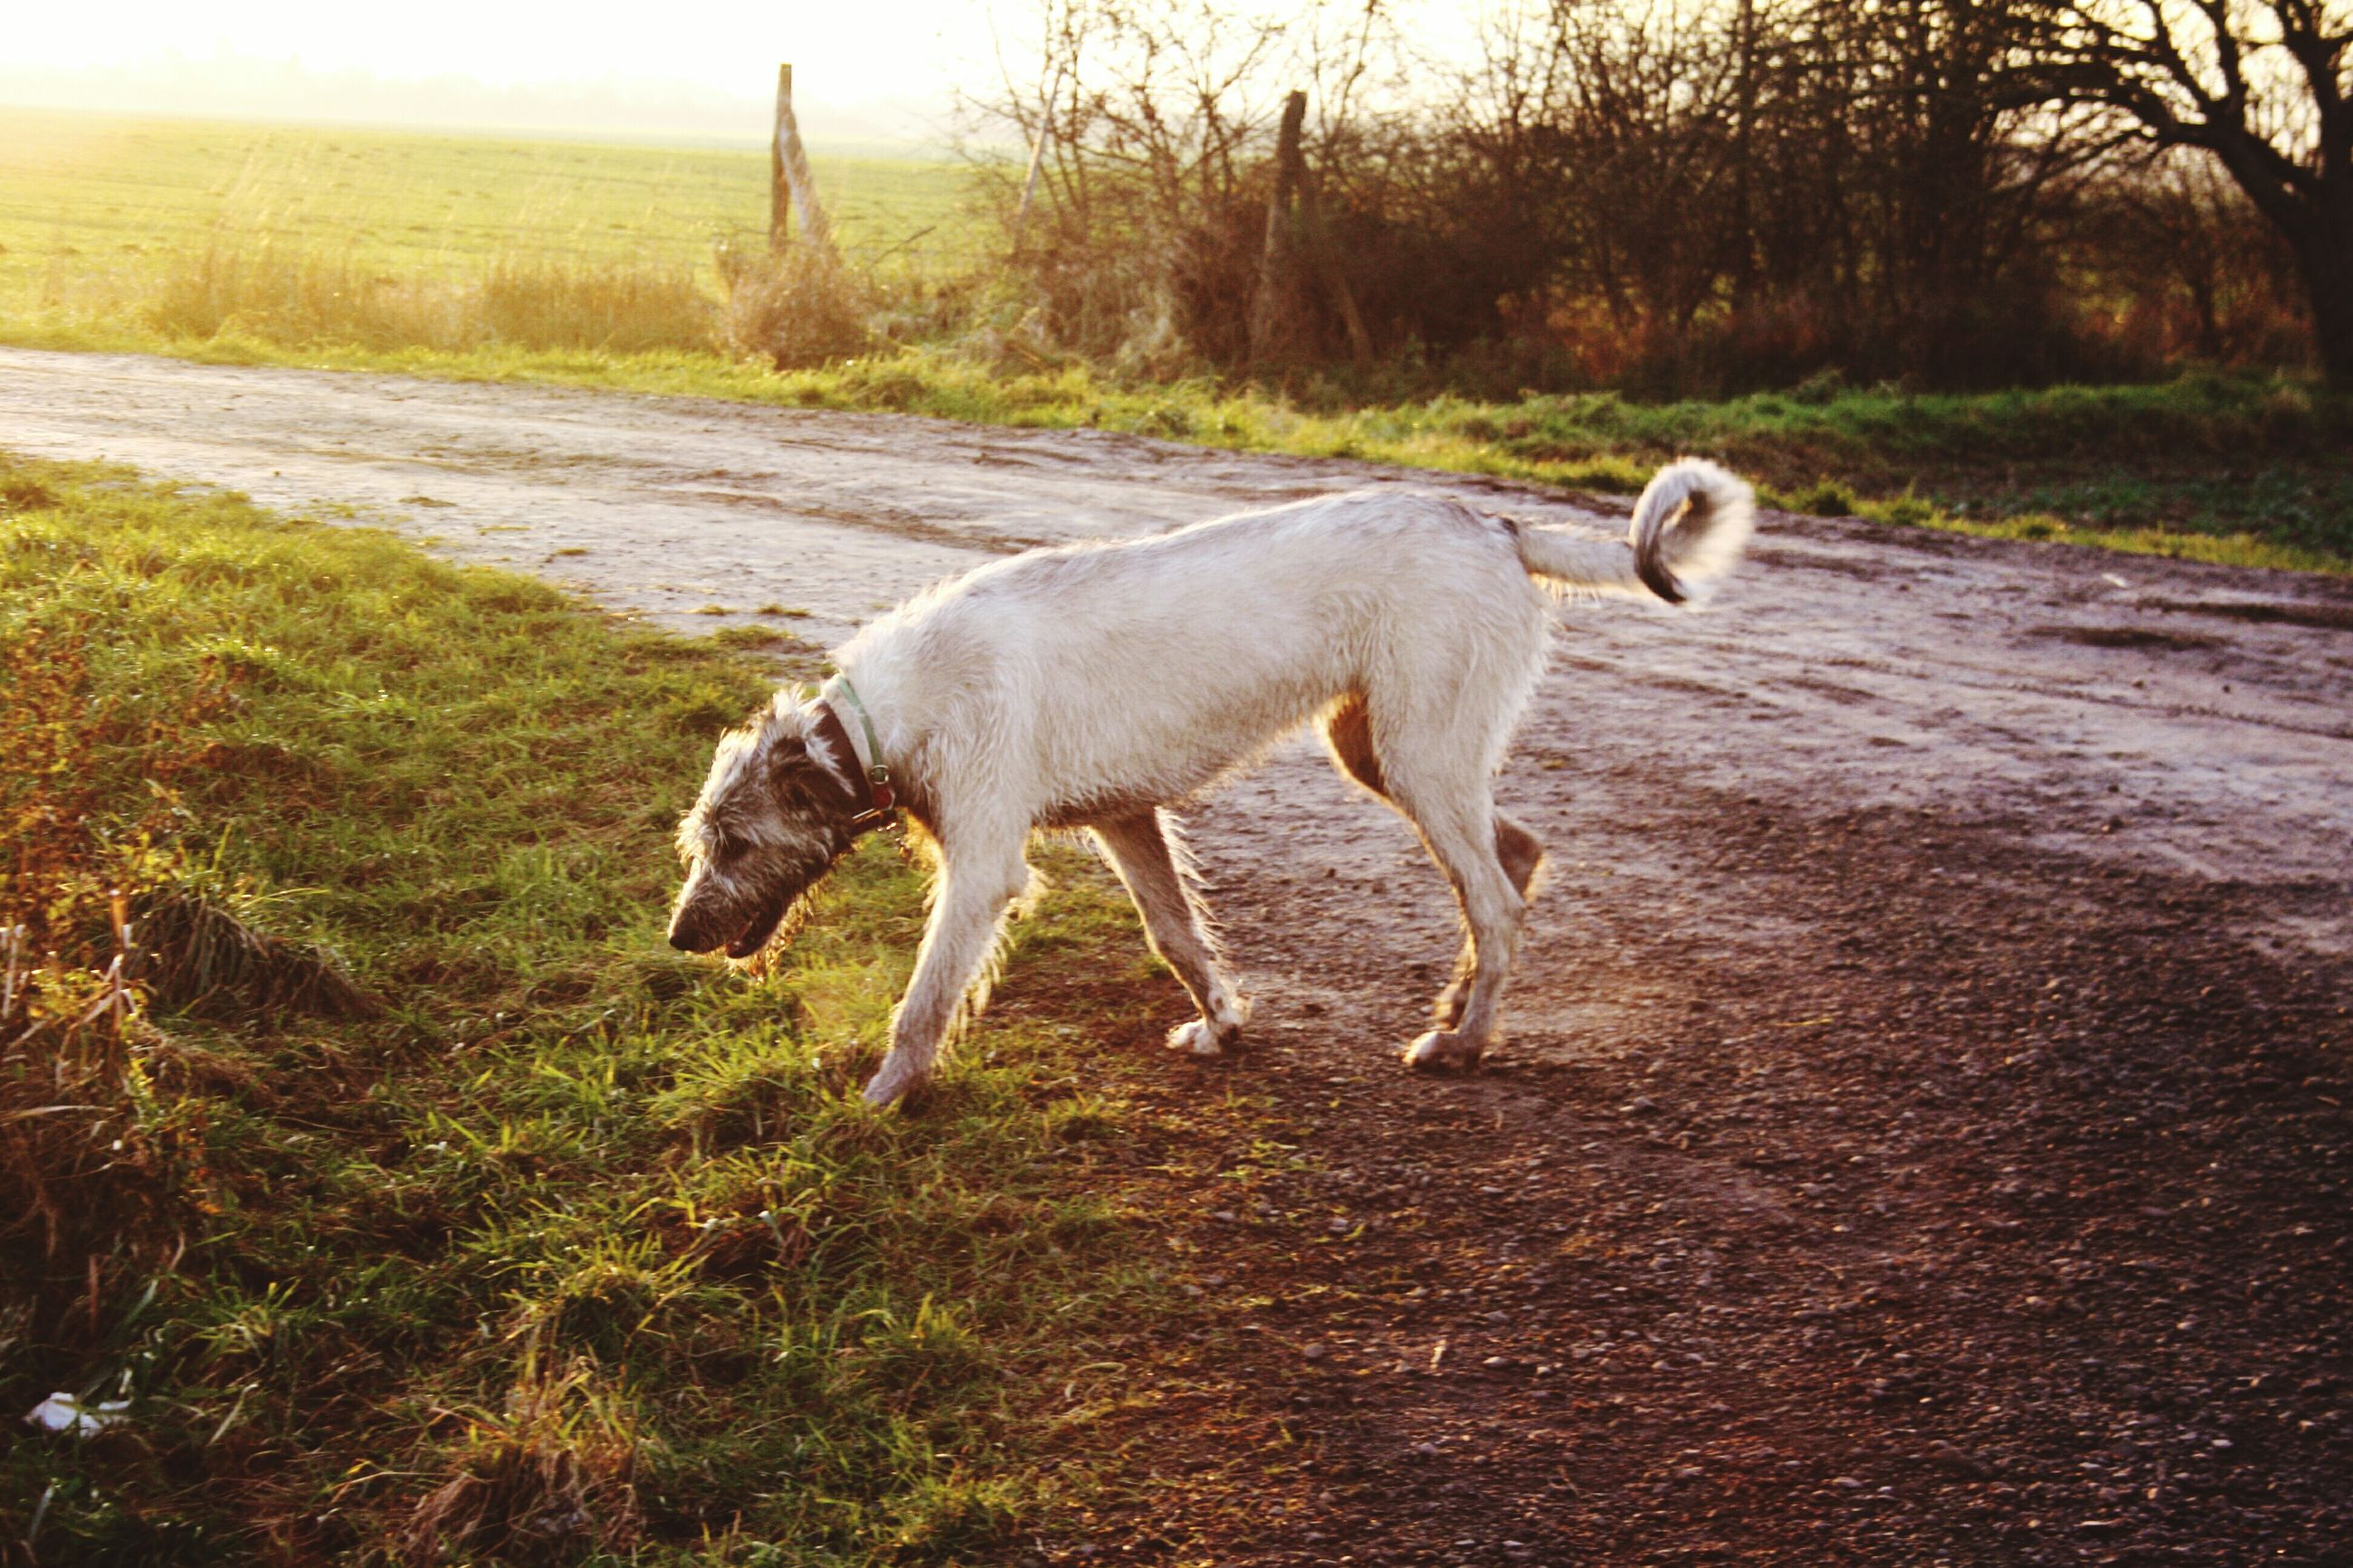 animal themes, mammal, domestic animals, grass, one animal, full length, standing, field, walking, nature, landscape, side view, dog, livestock, water, zoology, tree, day, pets, outdoors